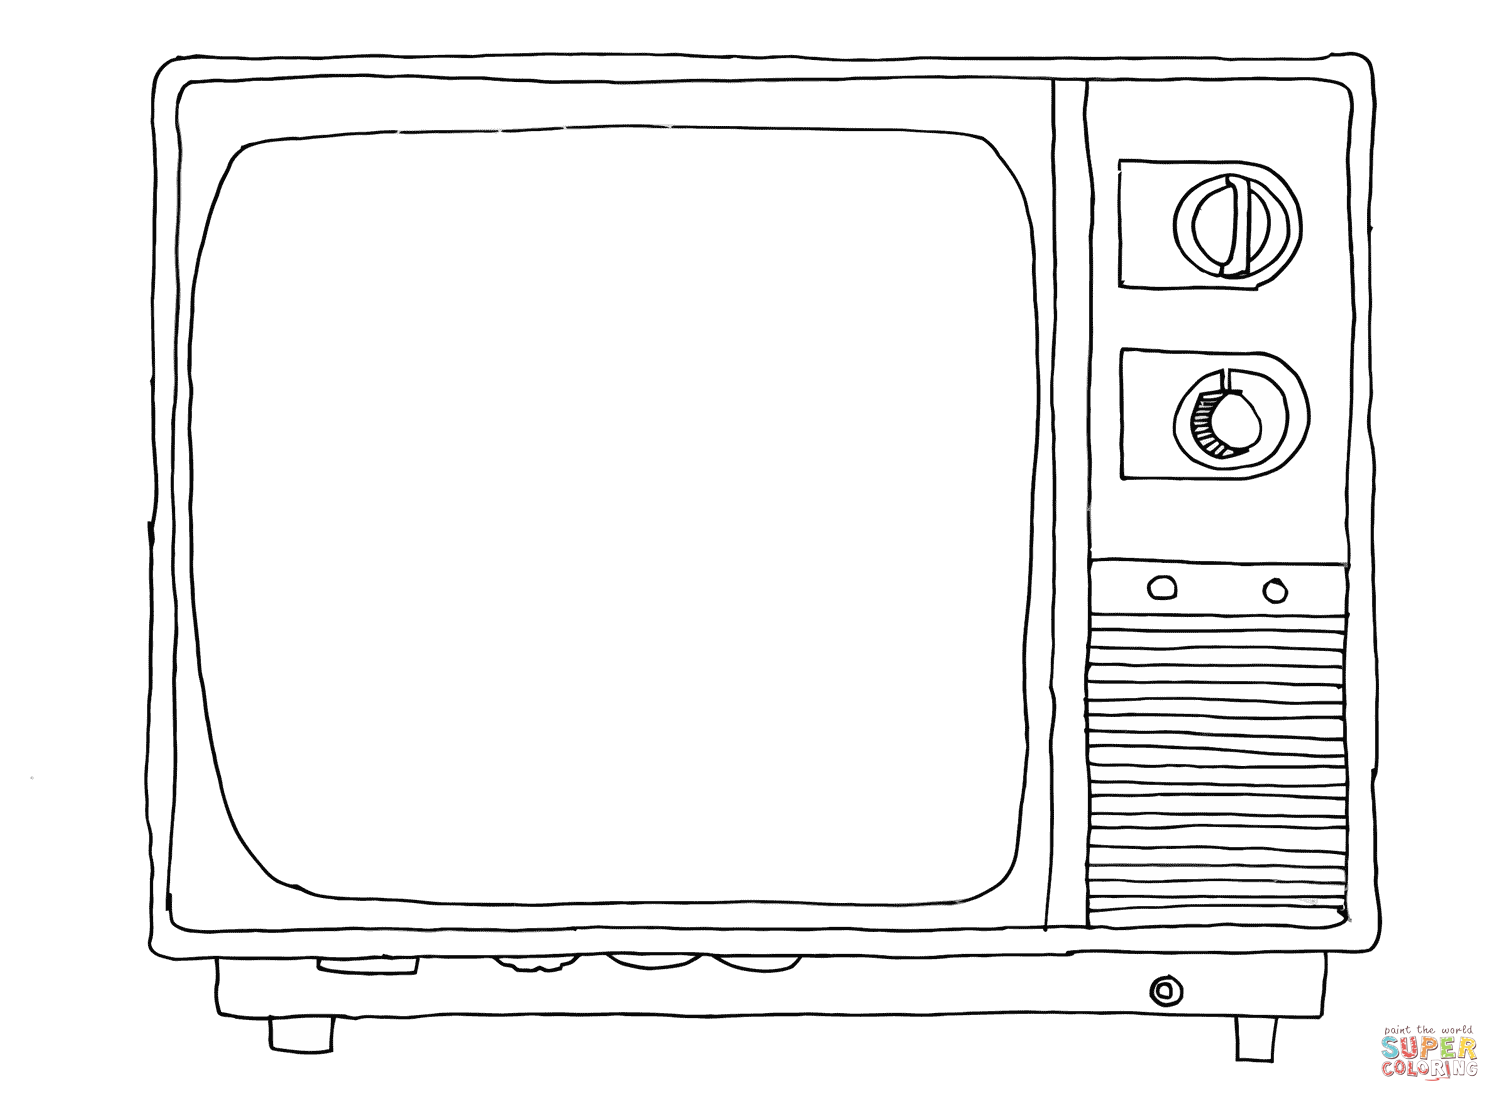 Old Sytle Tv Coloring Page